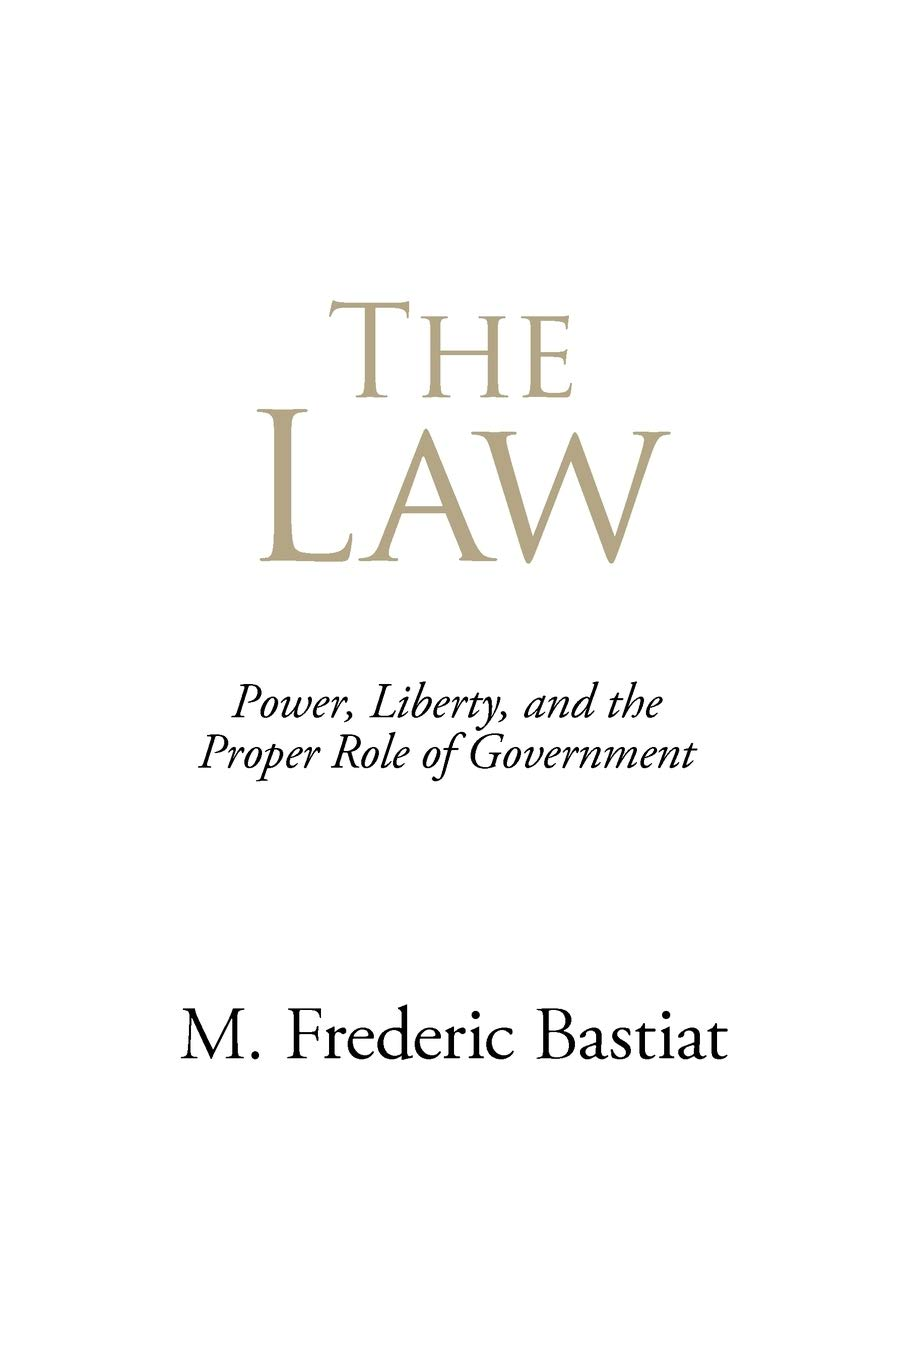 Image OfThe Law: Power, Liberty, And The Proper Role Of Government